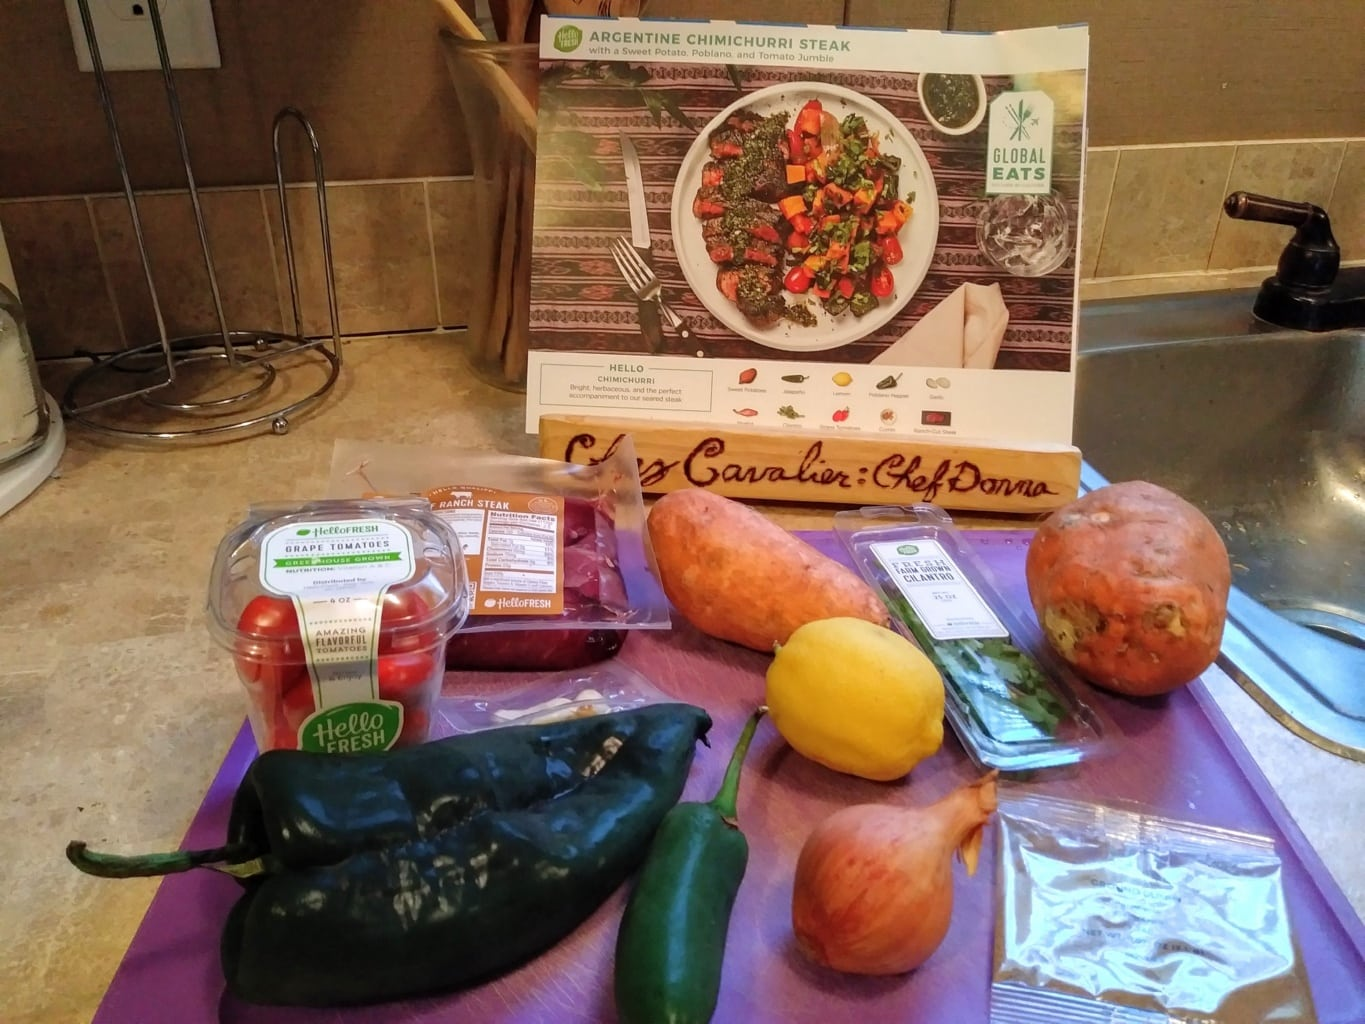 Argentine Chimichurri Steak ingredients